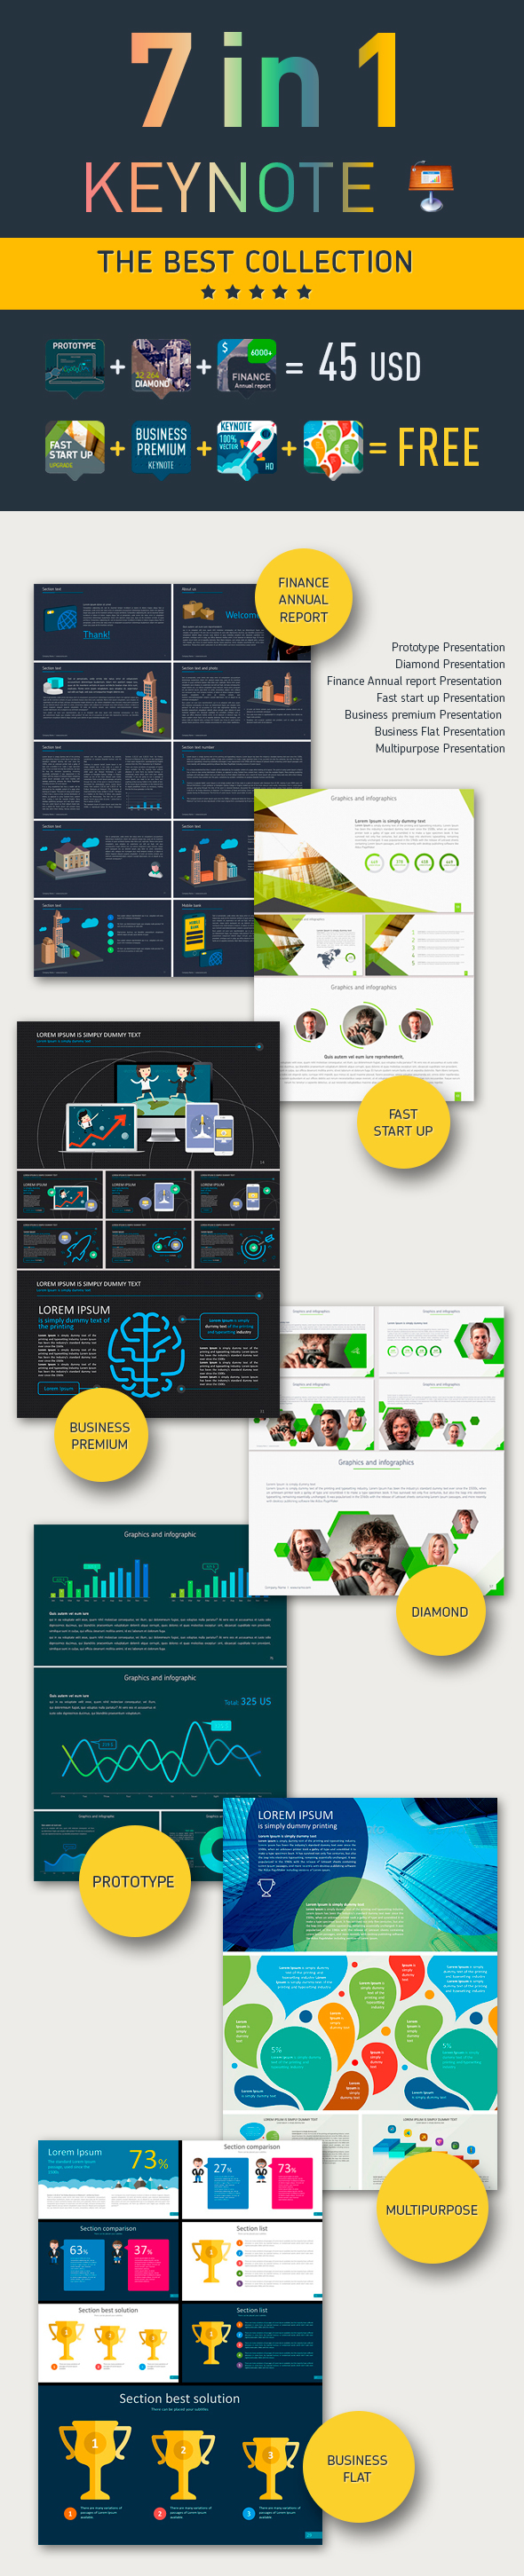 7 in 1 Keynote presentation - Business Keynote Templates